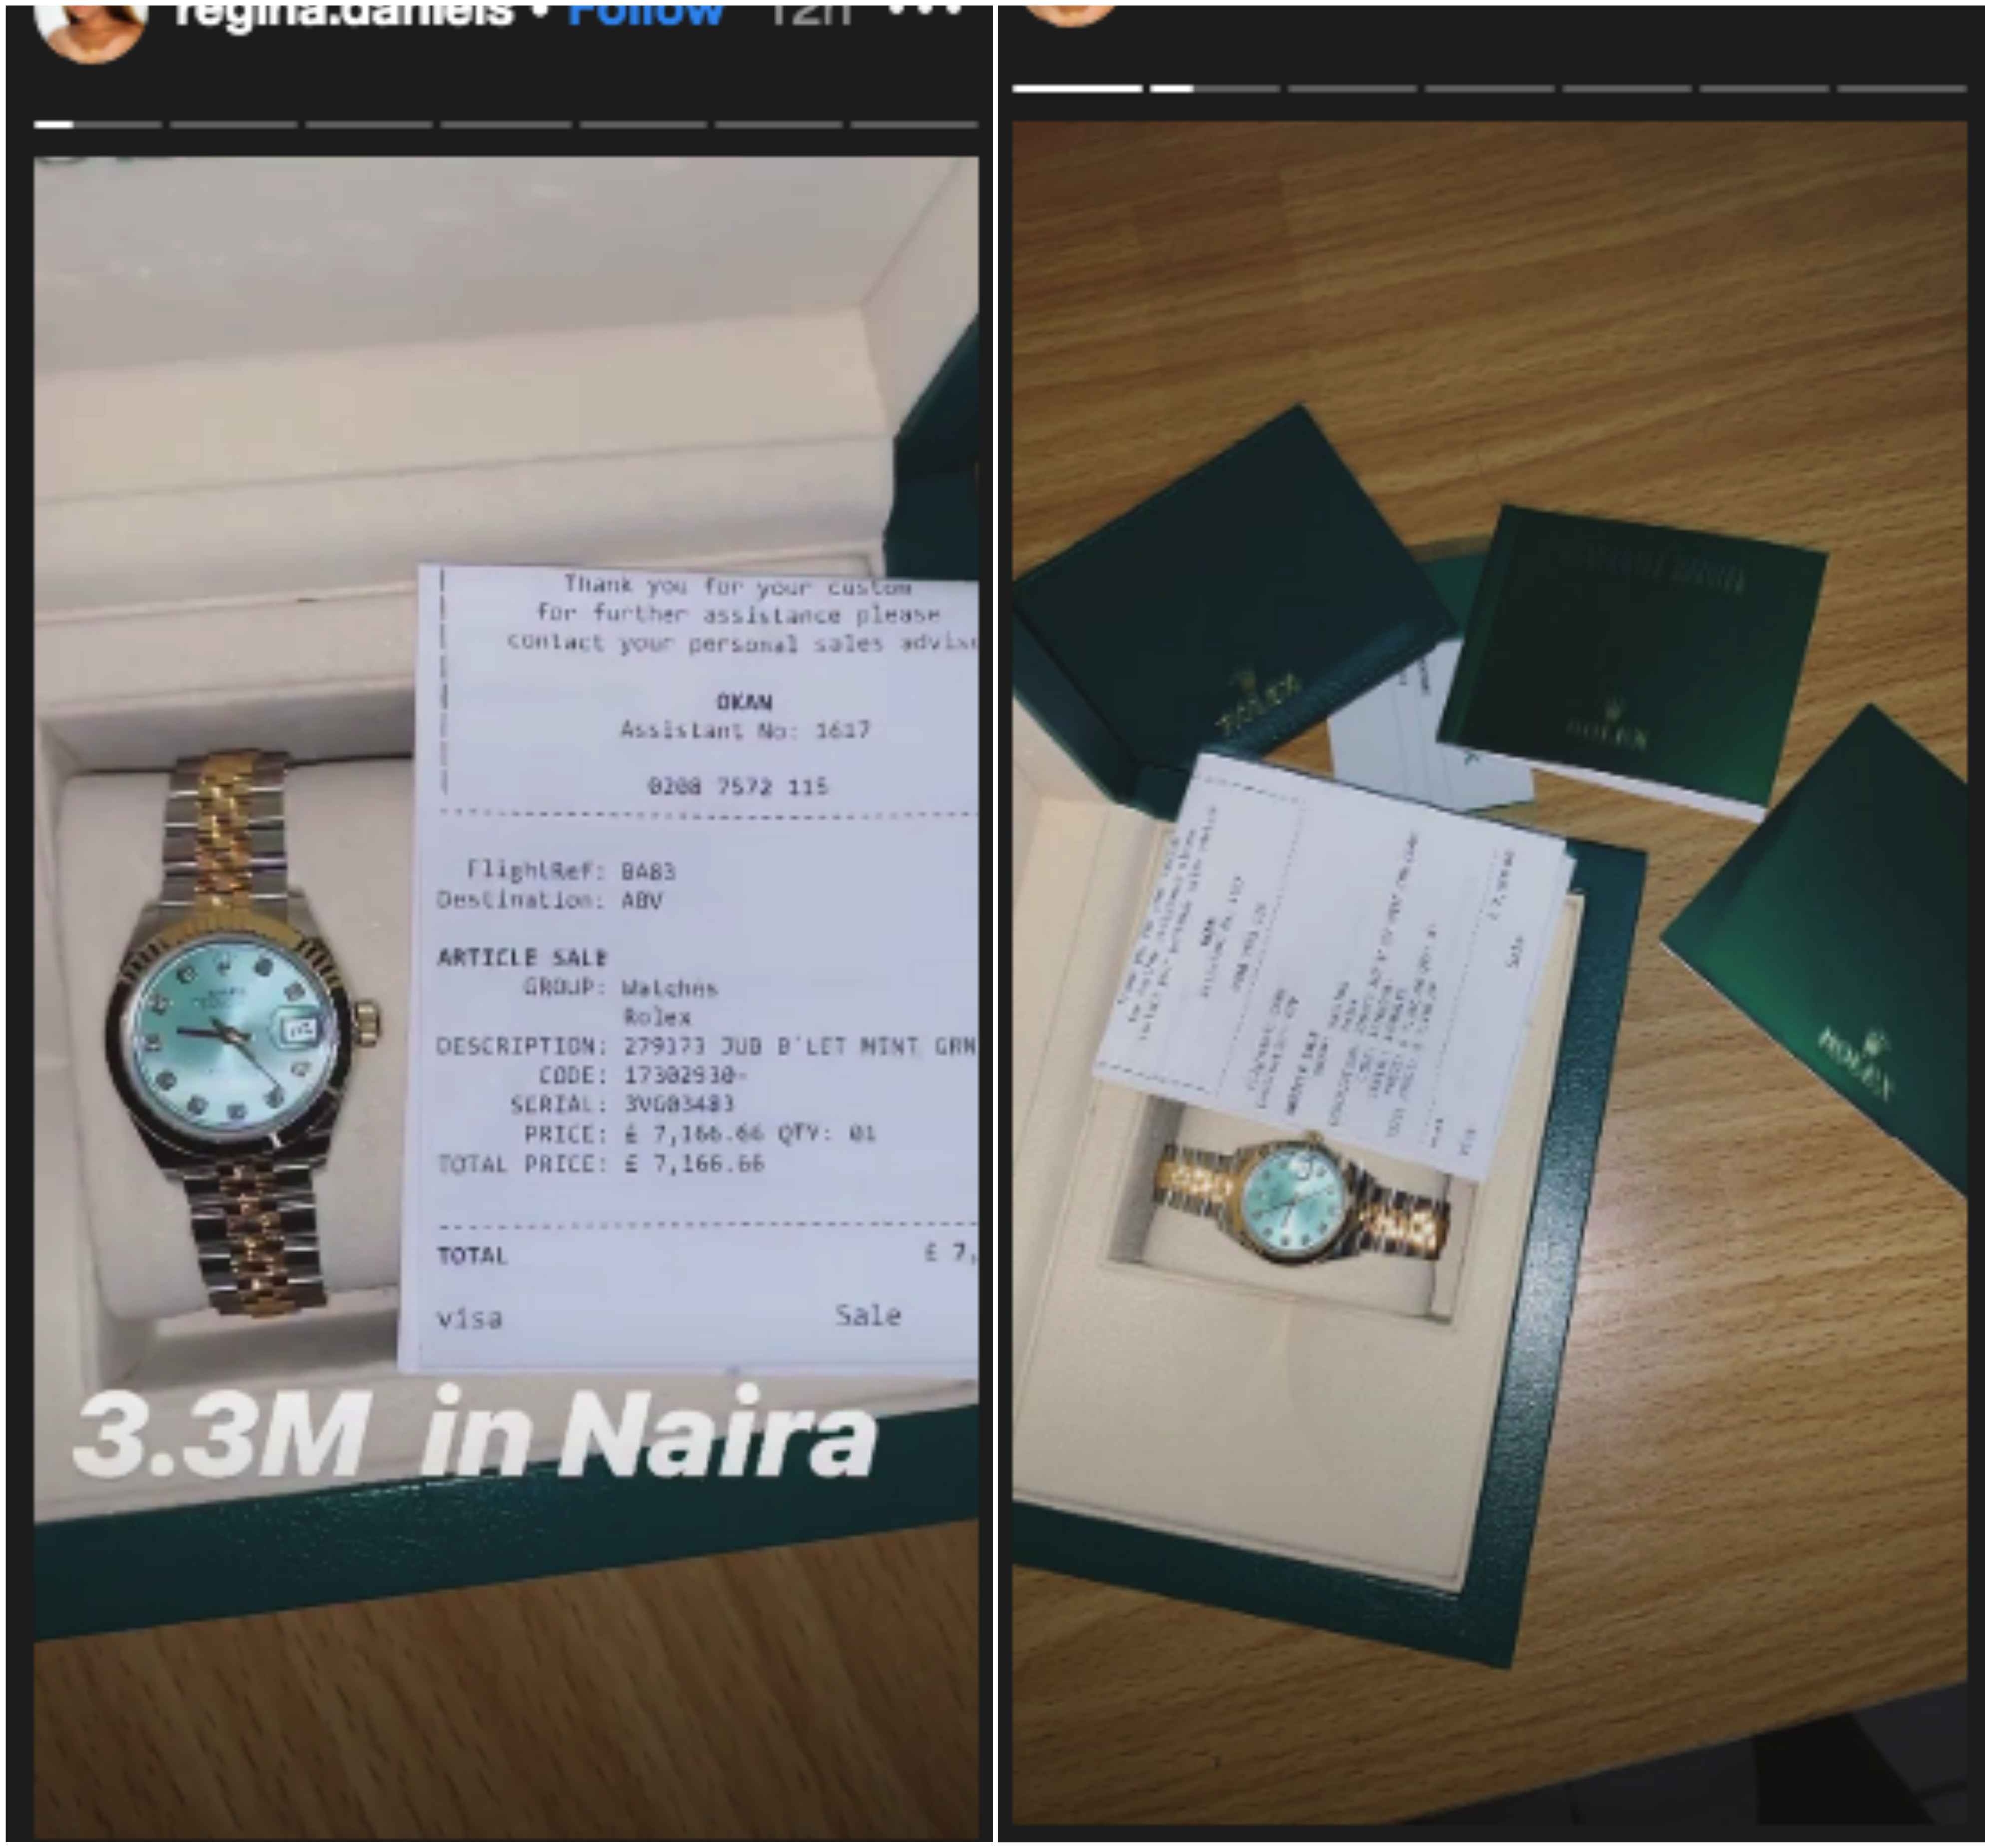 Photo Regina Daniels Okay ng - Regina Daniels causes commotion on social media as she acquires N3.3million Rolex wristwatch